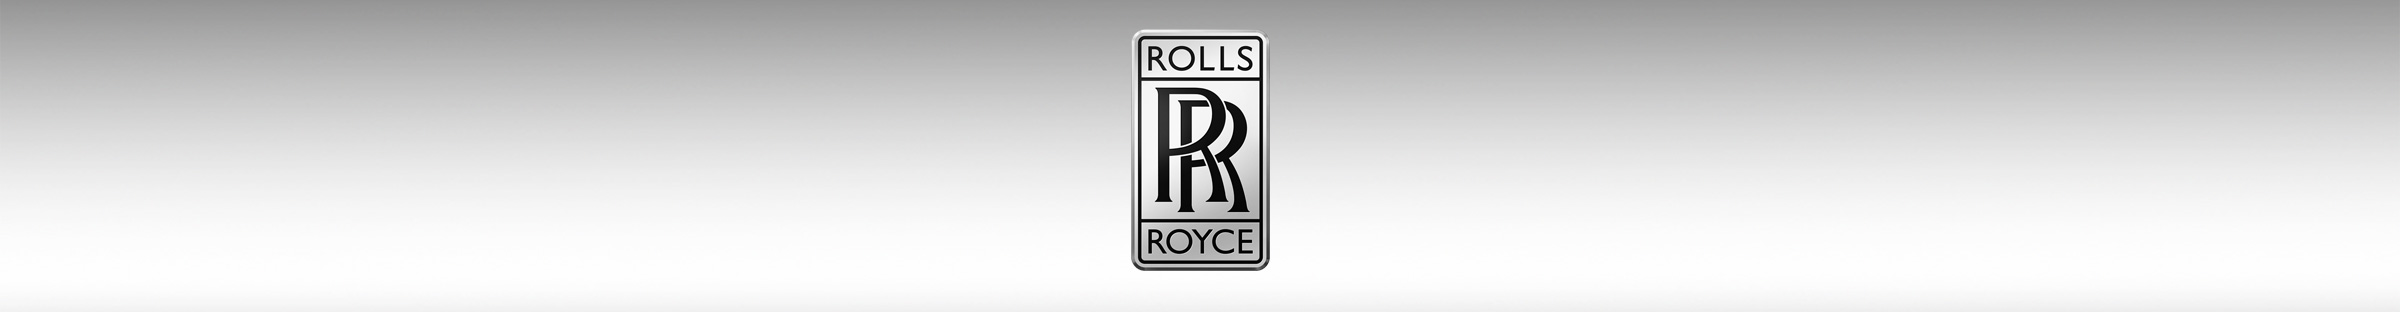 Featured Models from Rolls Royce include the Dawn Black Badge now at the 2018 Sacramento International Auto Show